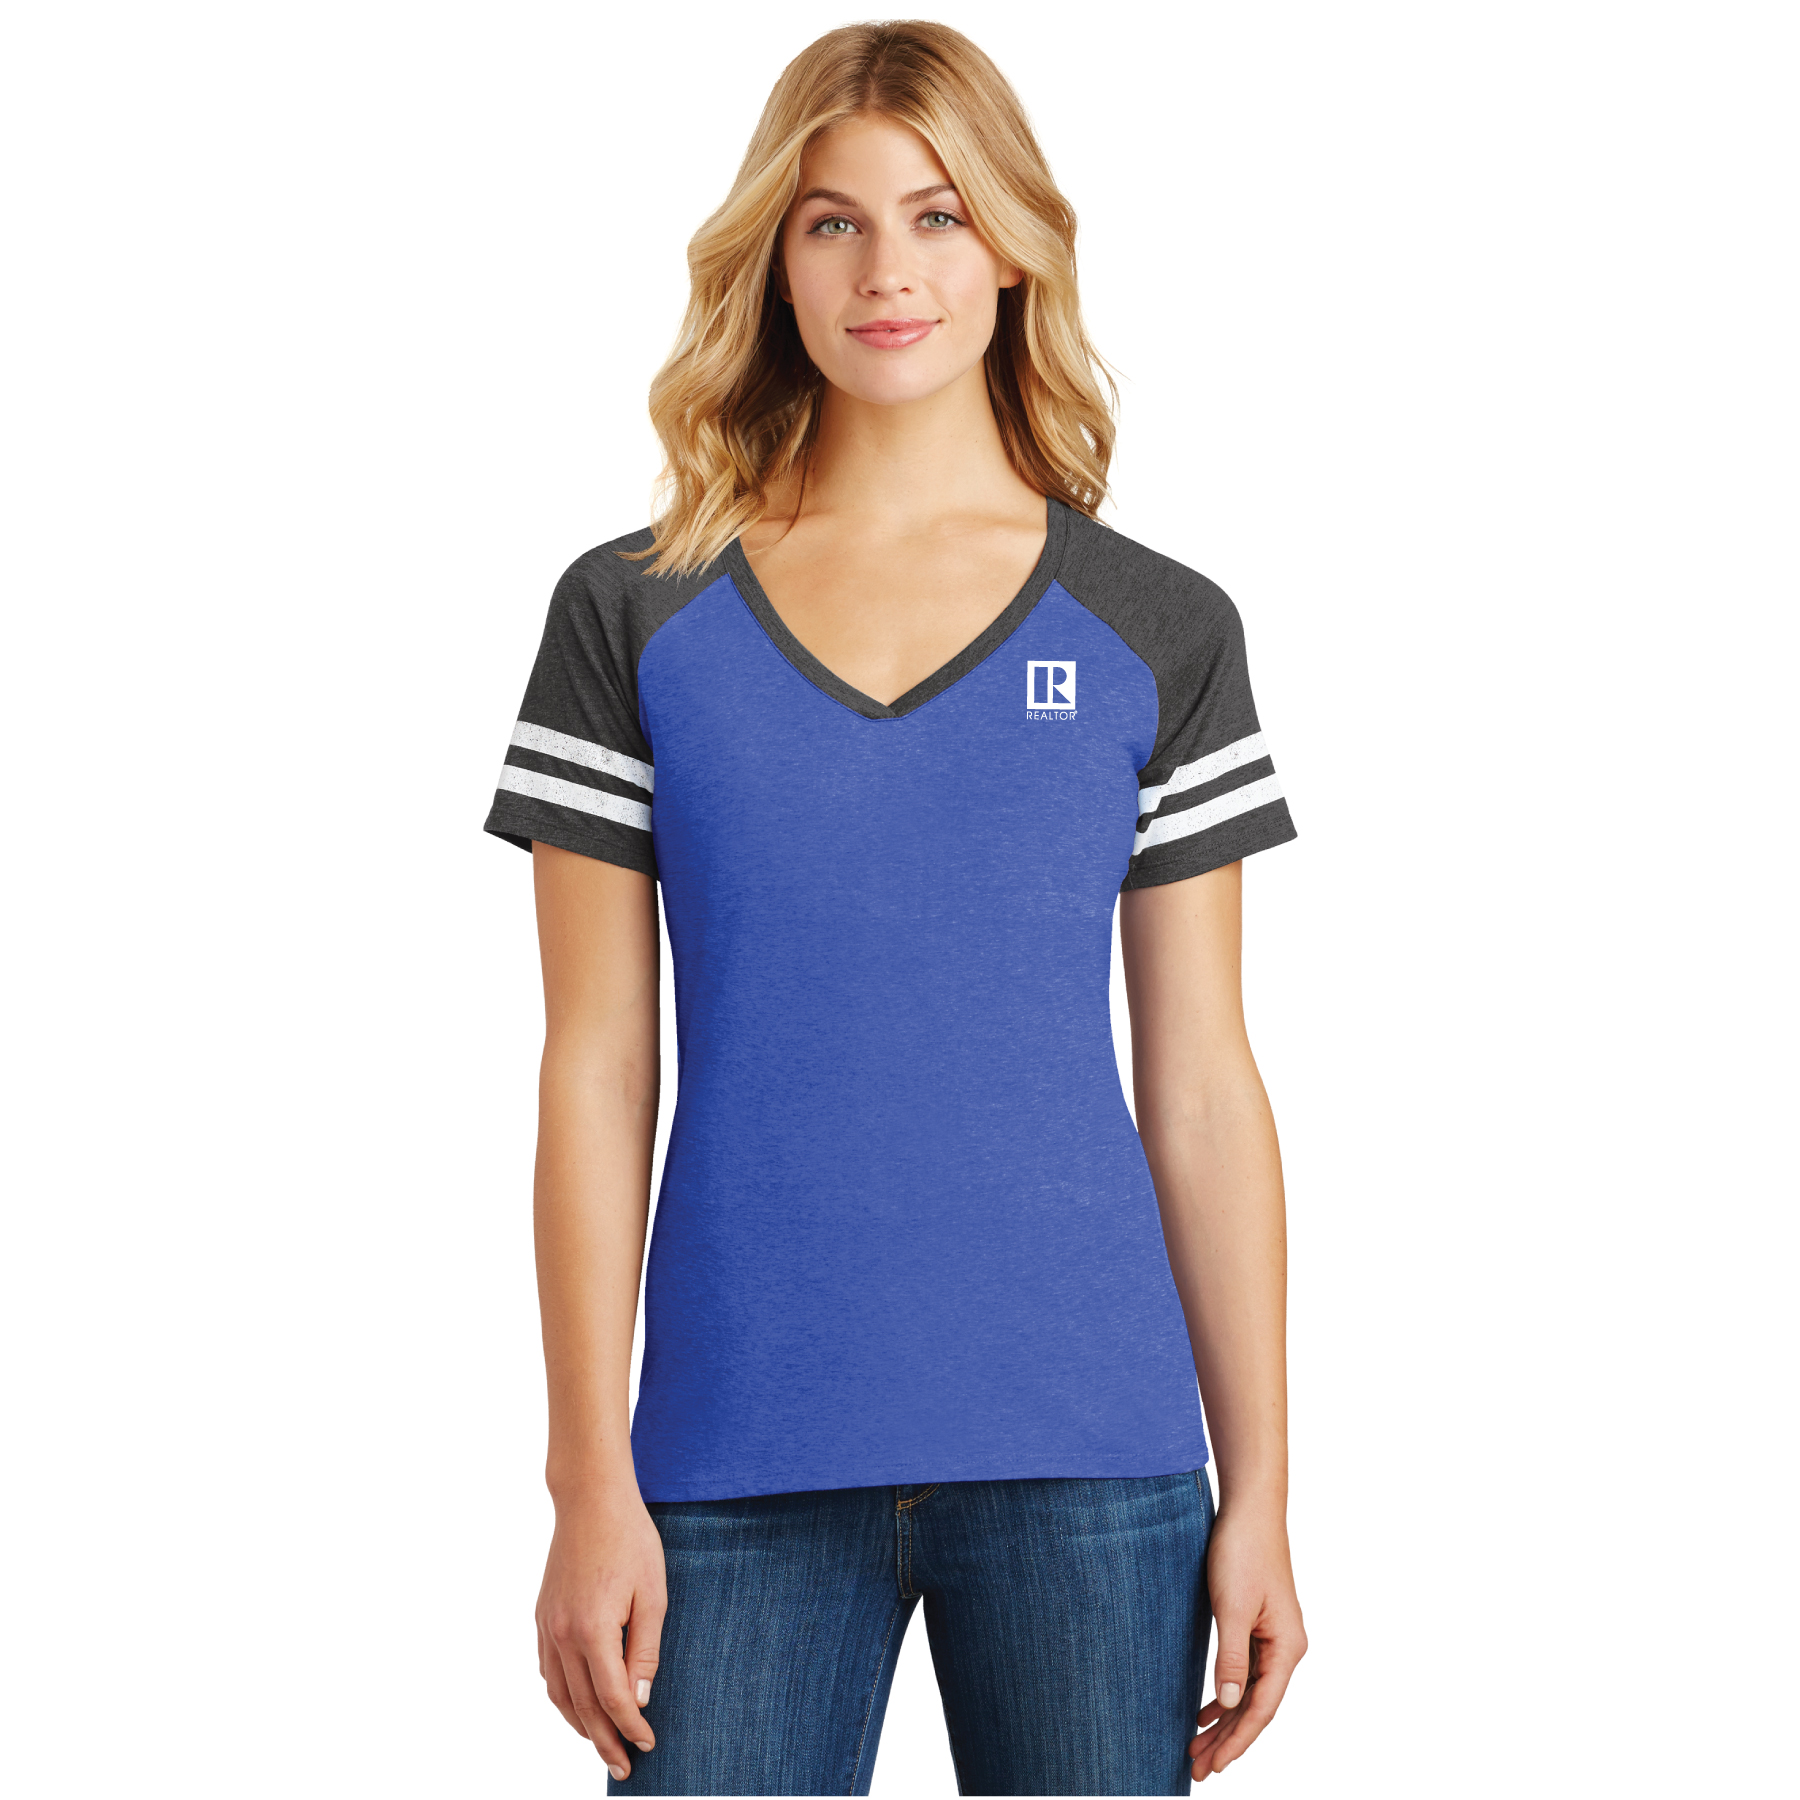 Ladies Game Day V-Neck Tee ladies, v-necks, sports, games, tees